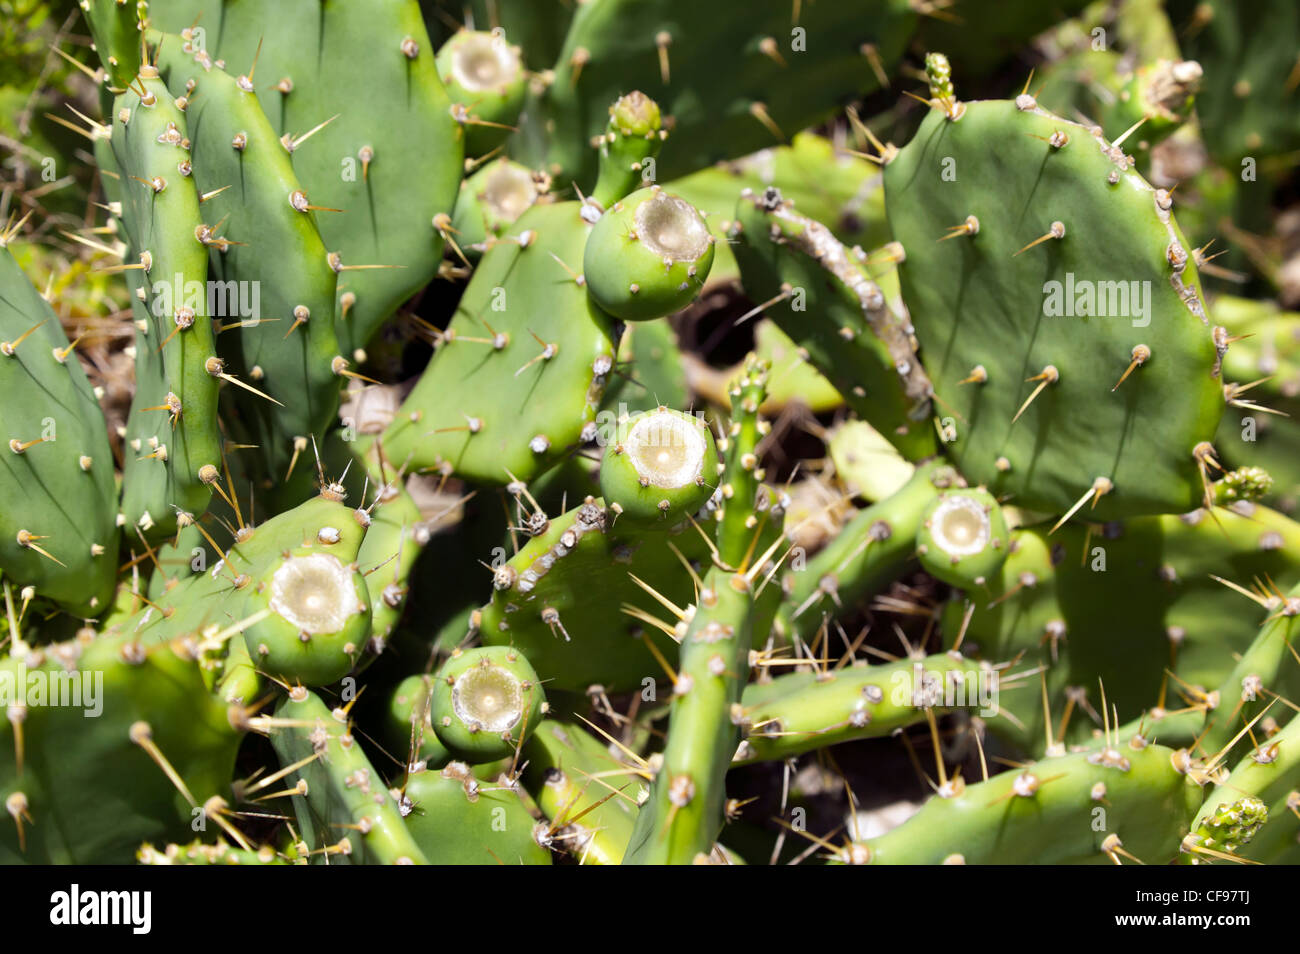 Close-up of a Prickly Pear plant with a (Opuntia robusta) Stock Photo